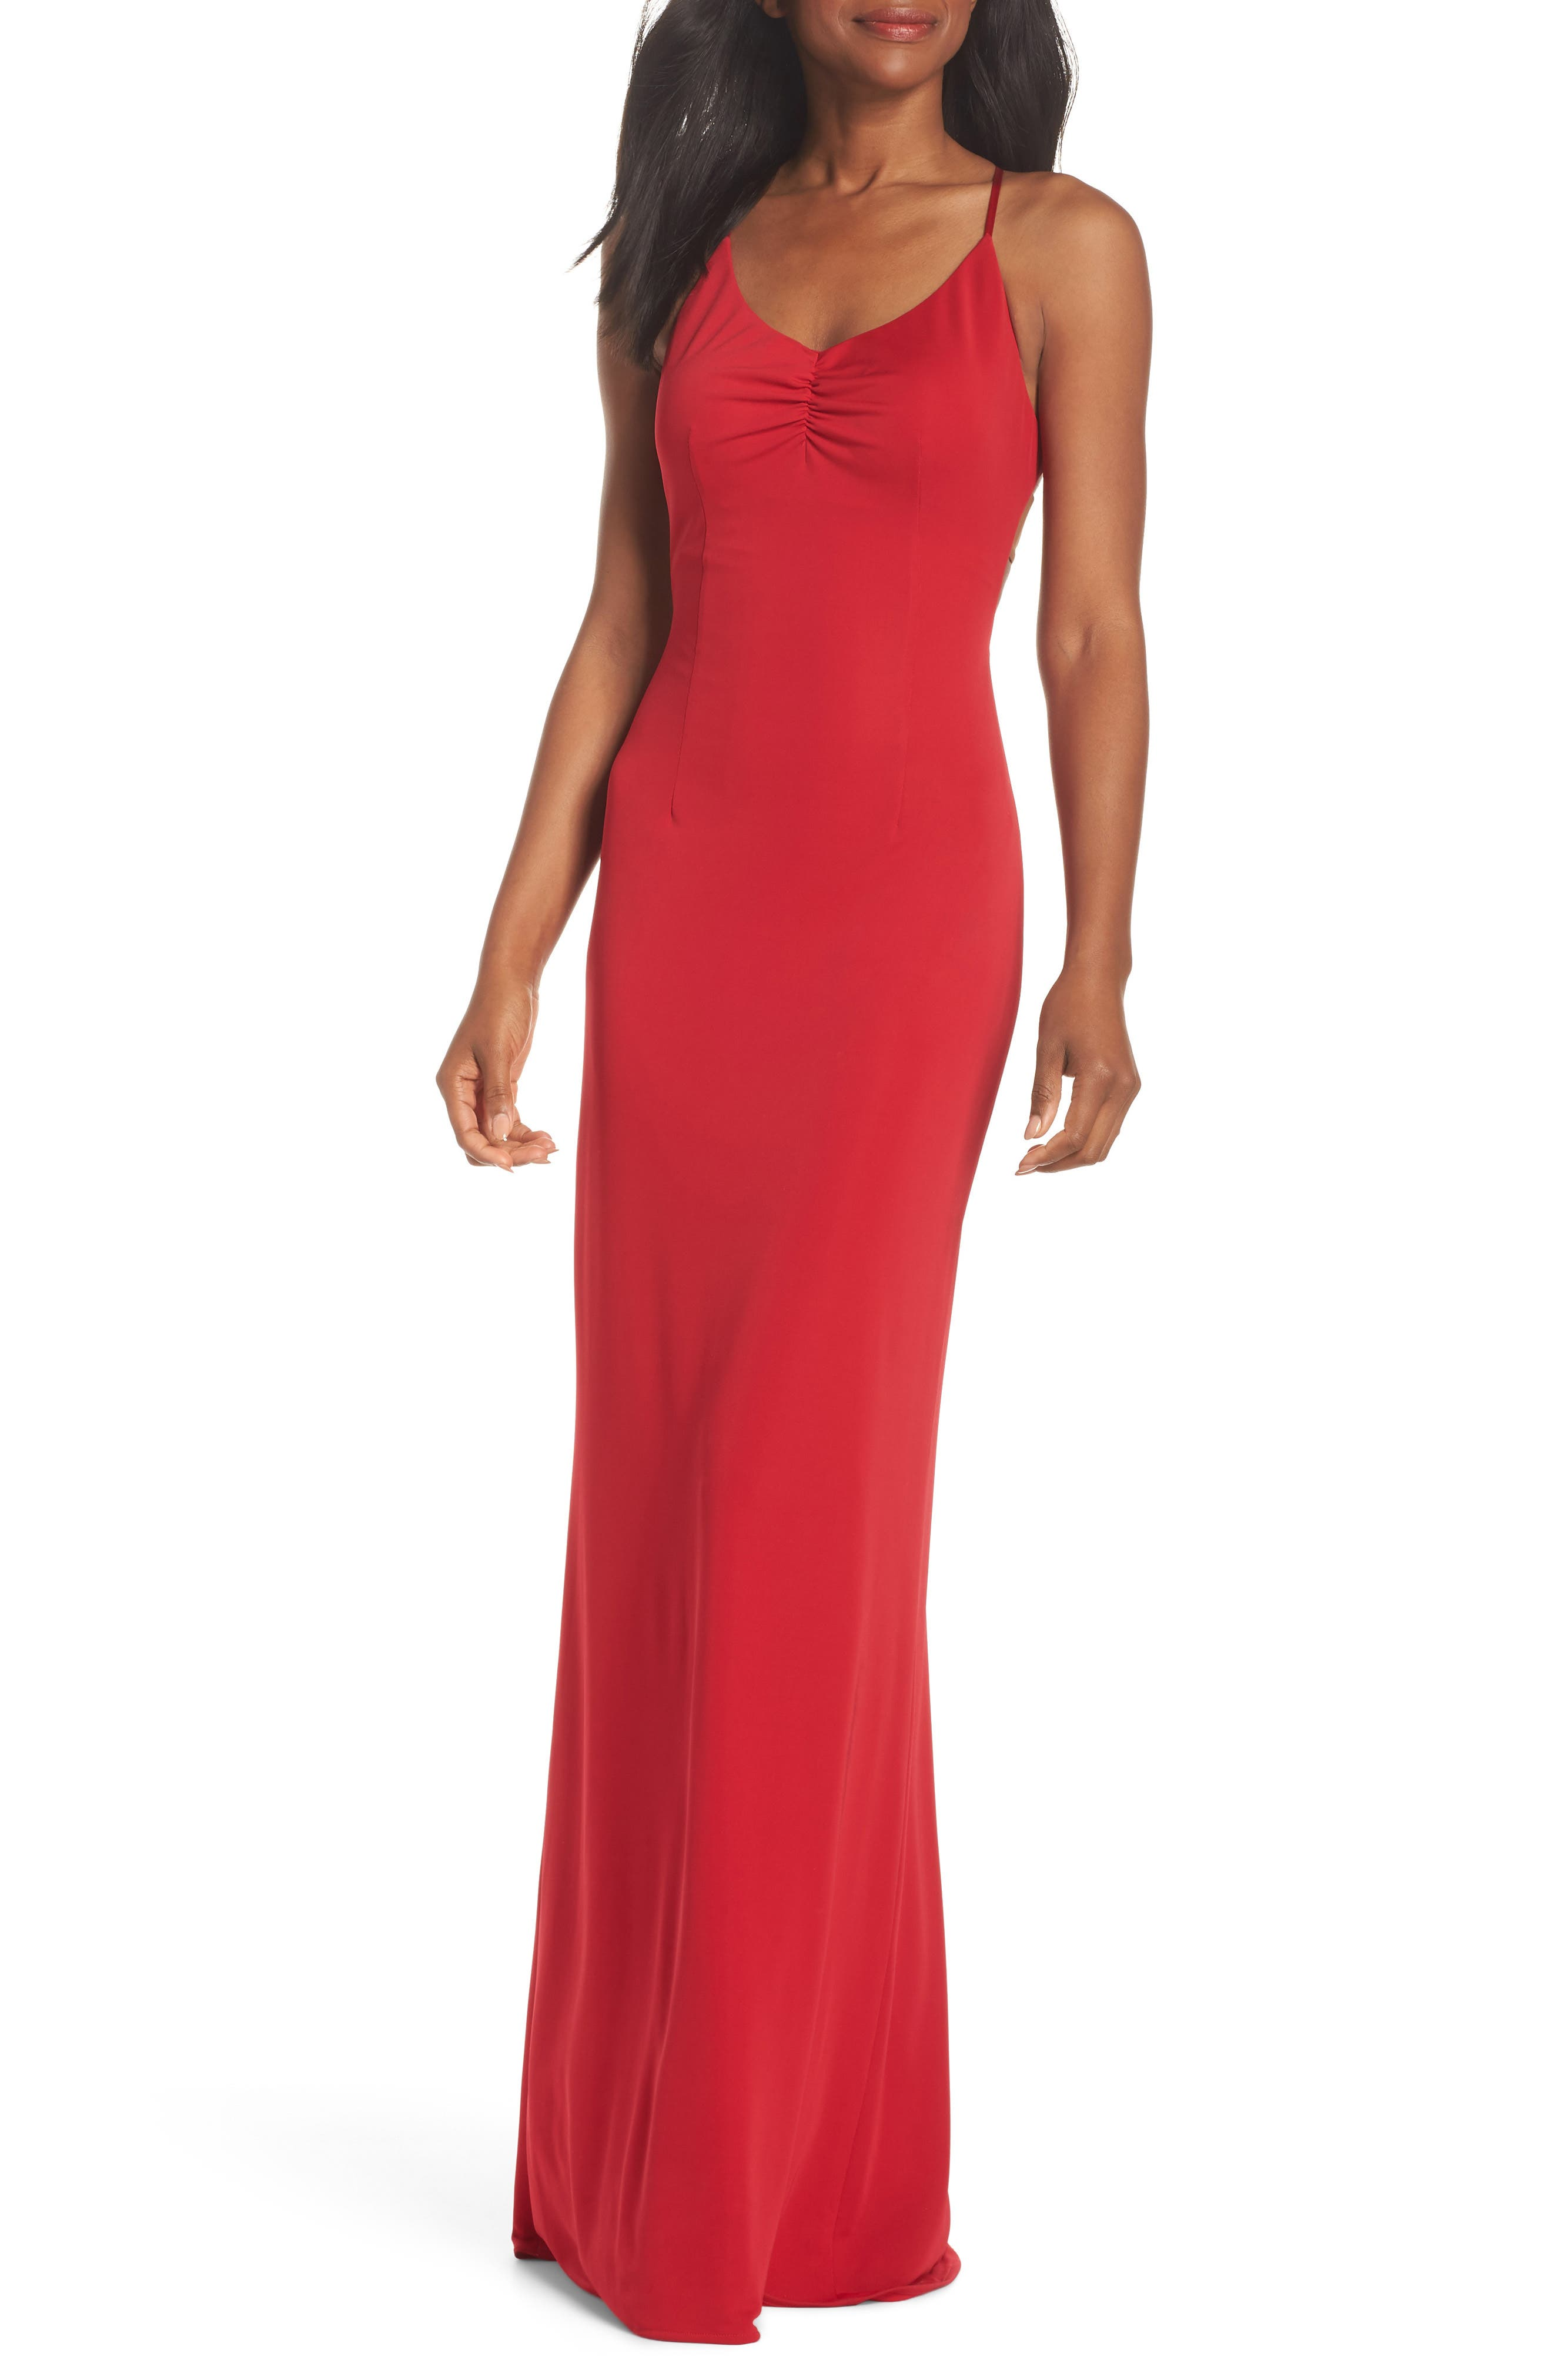 Donna Backless Jersey Dress,                             Main thumbnail 1, color,                             RED